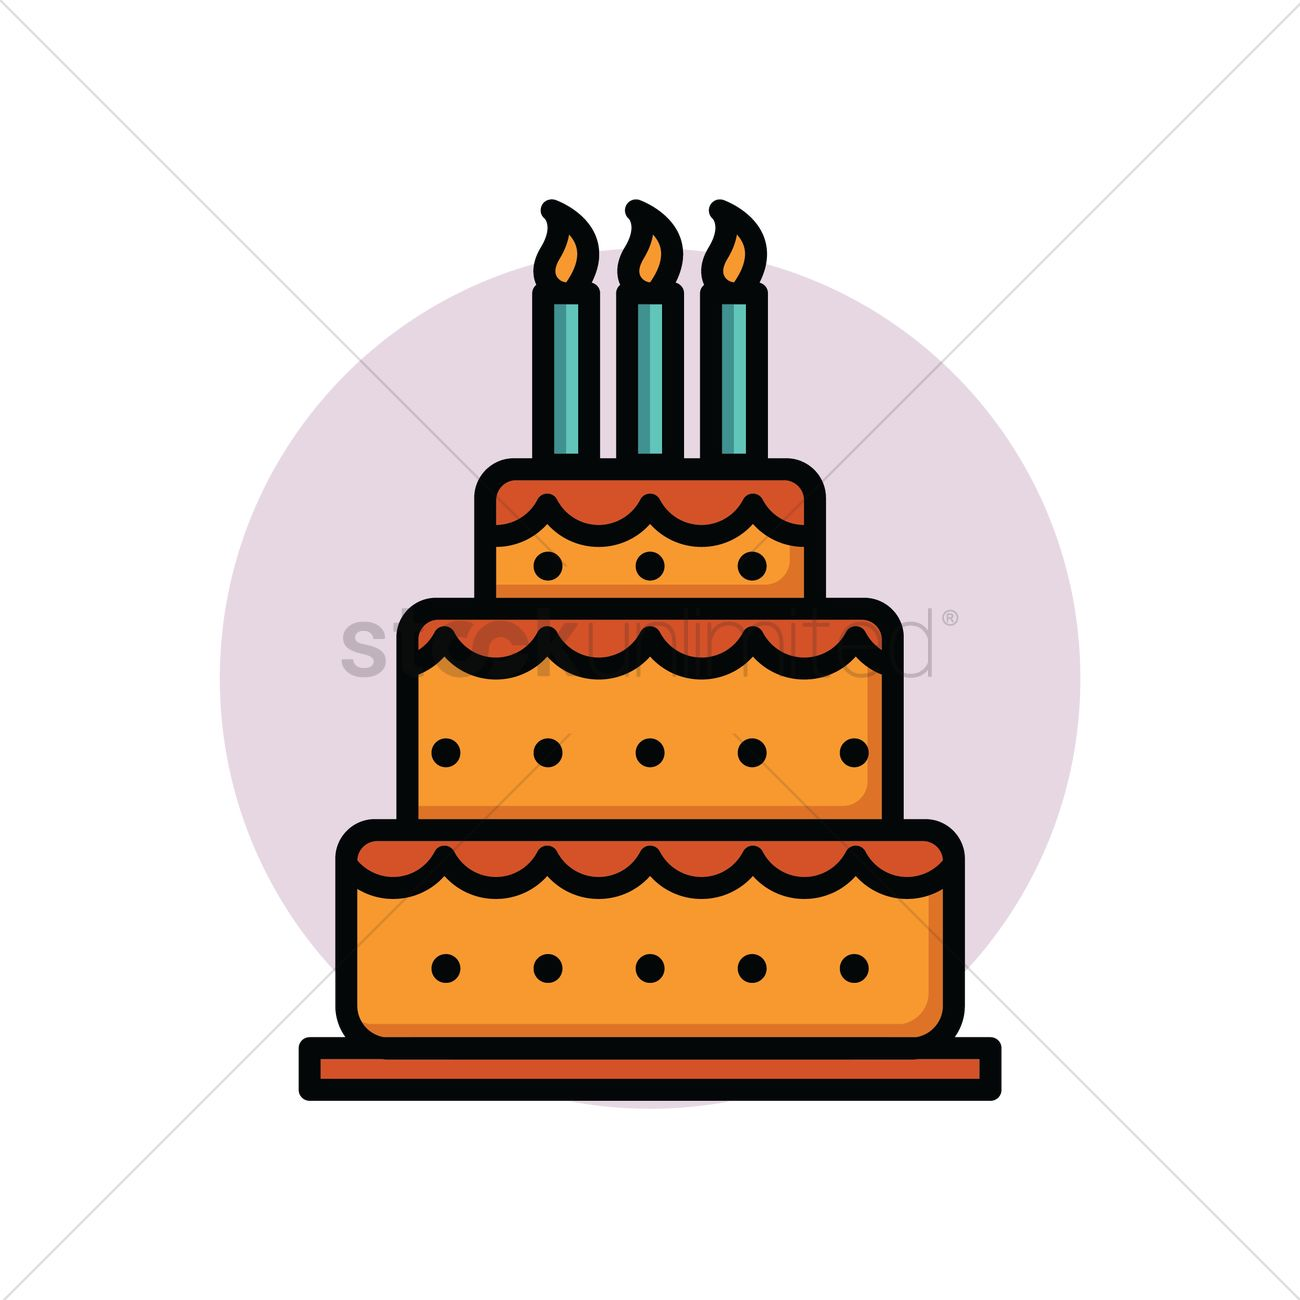 Tremendous Layered Birthday Cake Vector Image 1870933 Stockunlimited Birthday Cards Printable Nowaargucafe Filternl